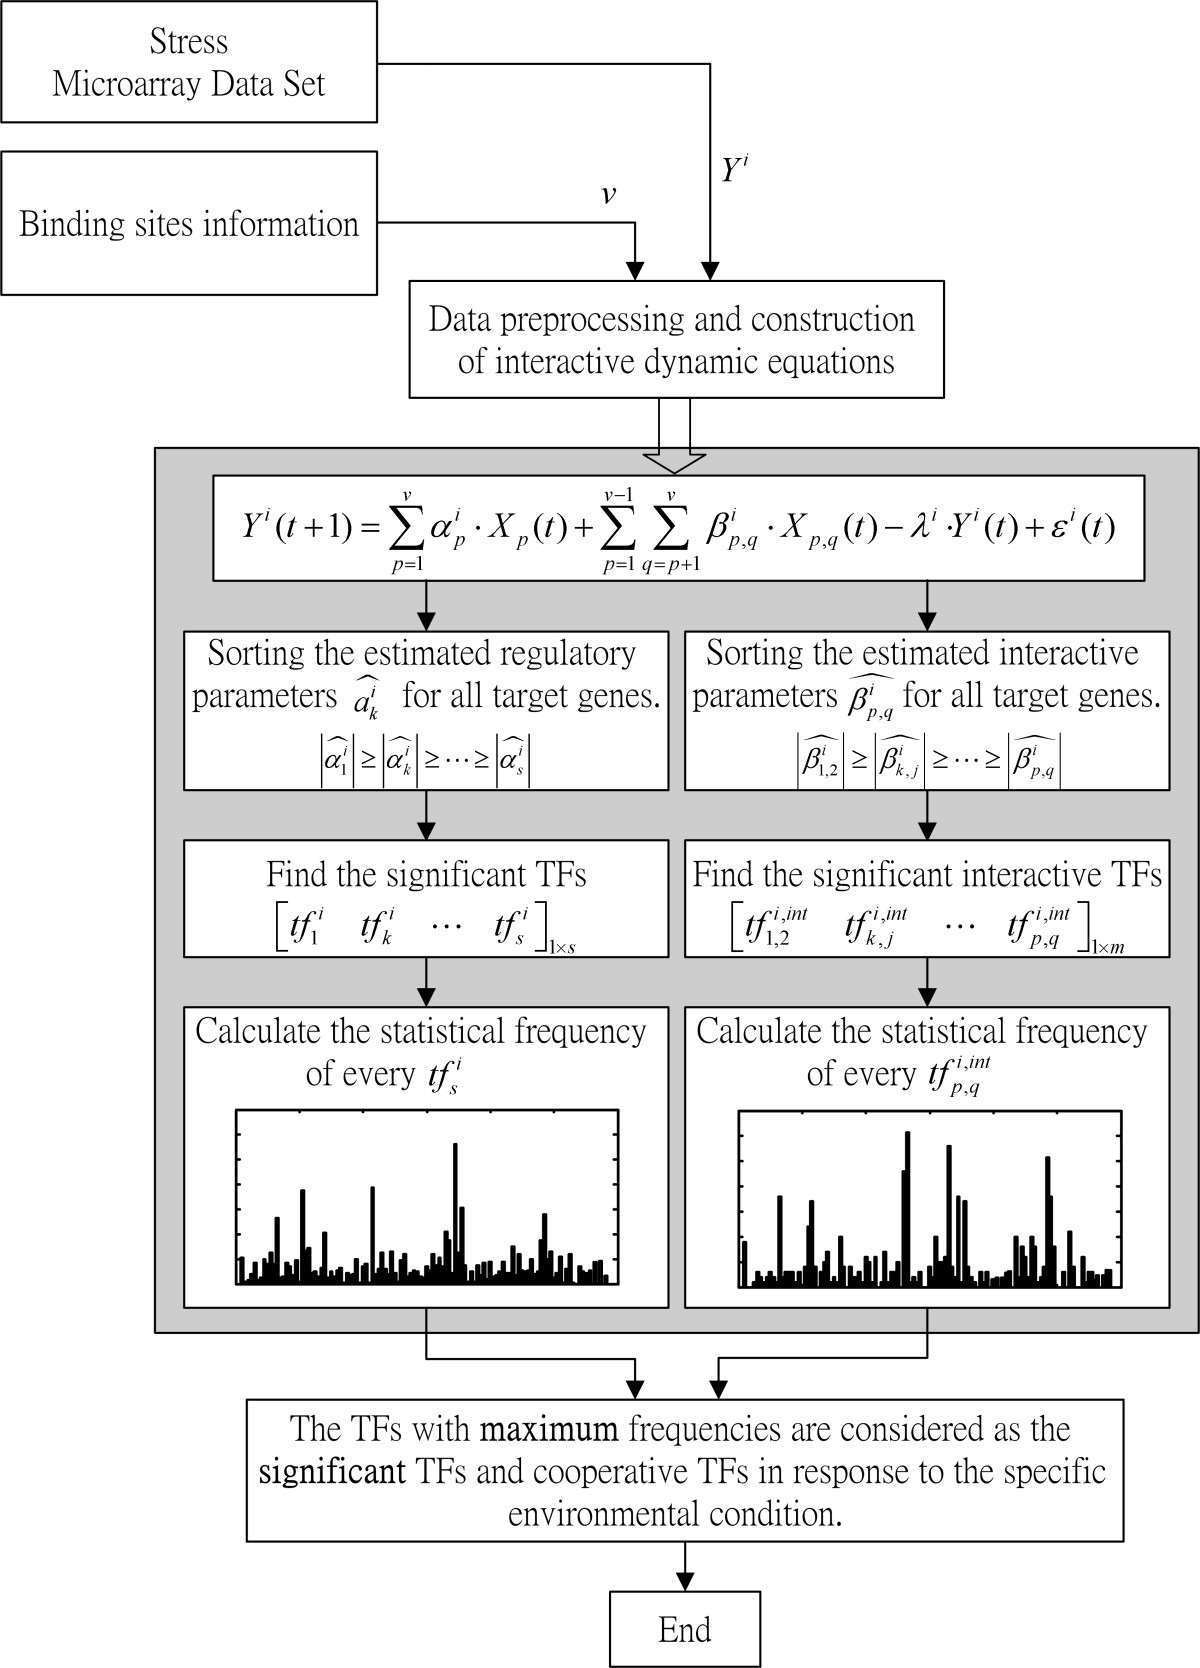 http://static-content.springer.com/image/art%3A10.1186%2F1471-2105-8-473/MediaObjects/12859_2007_Article_1845_Fig4_HTML.jpg